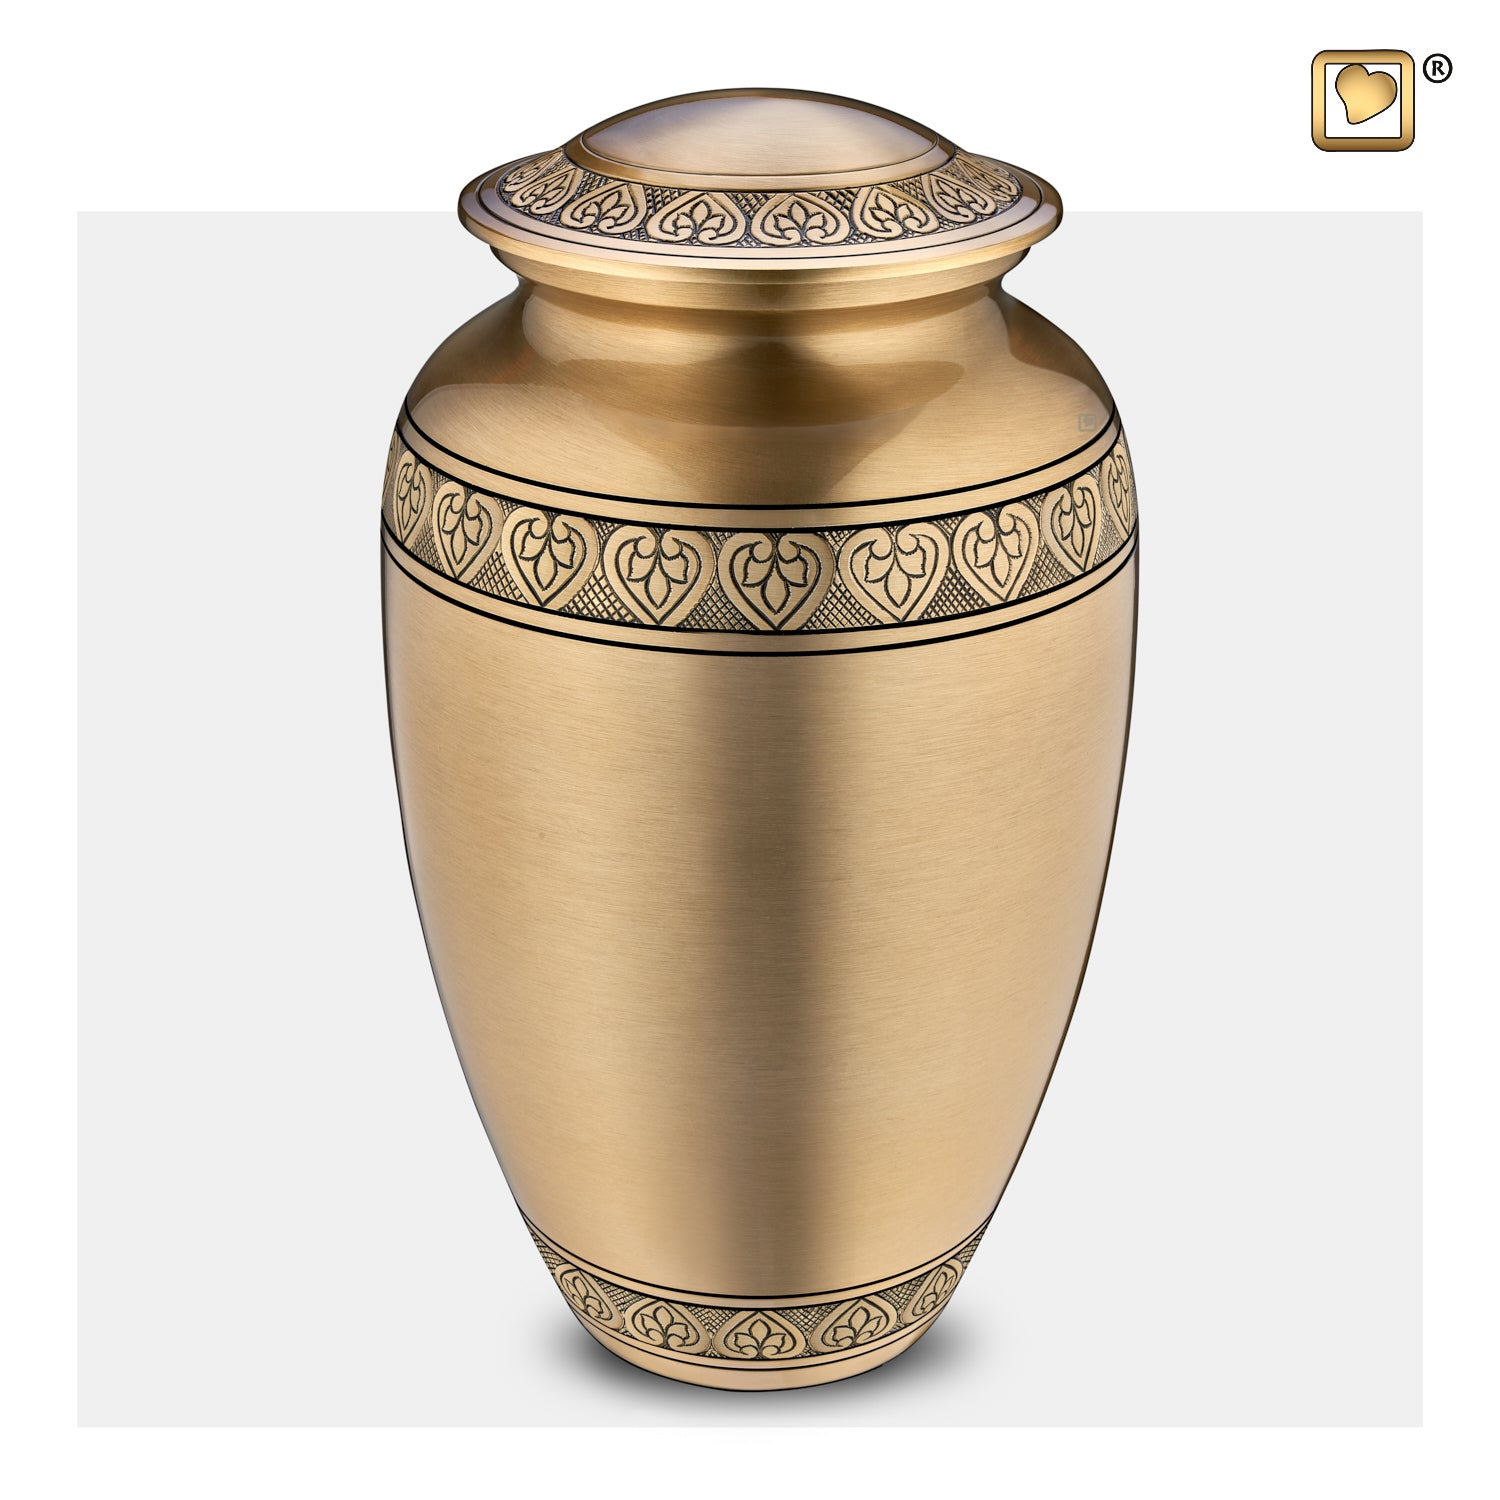 A211 ADULT CLASSIC™ GOLD CREMATION URN